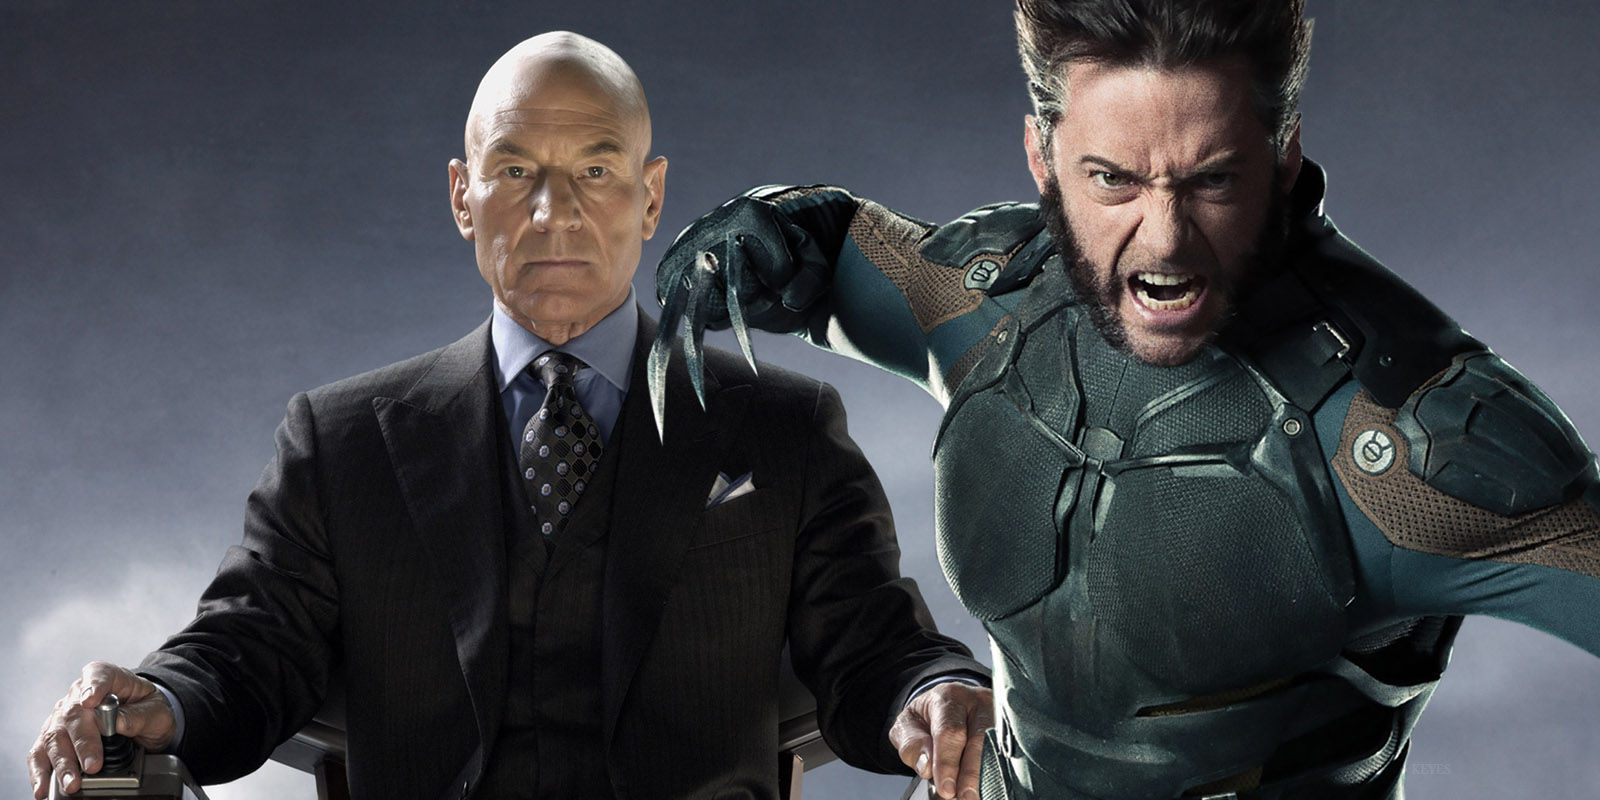 patrick stewart officially confirmed to return as charles